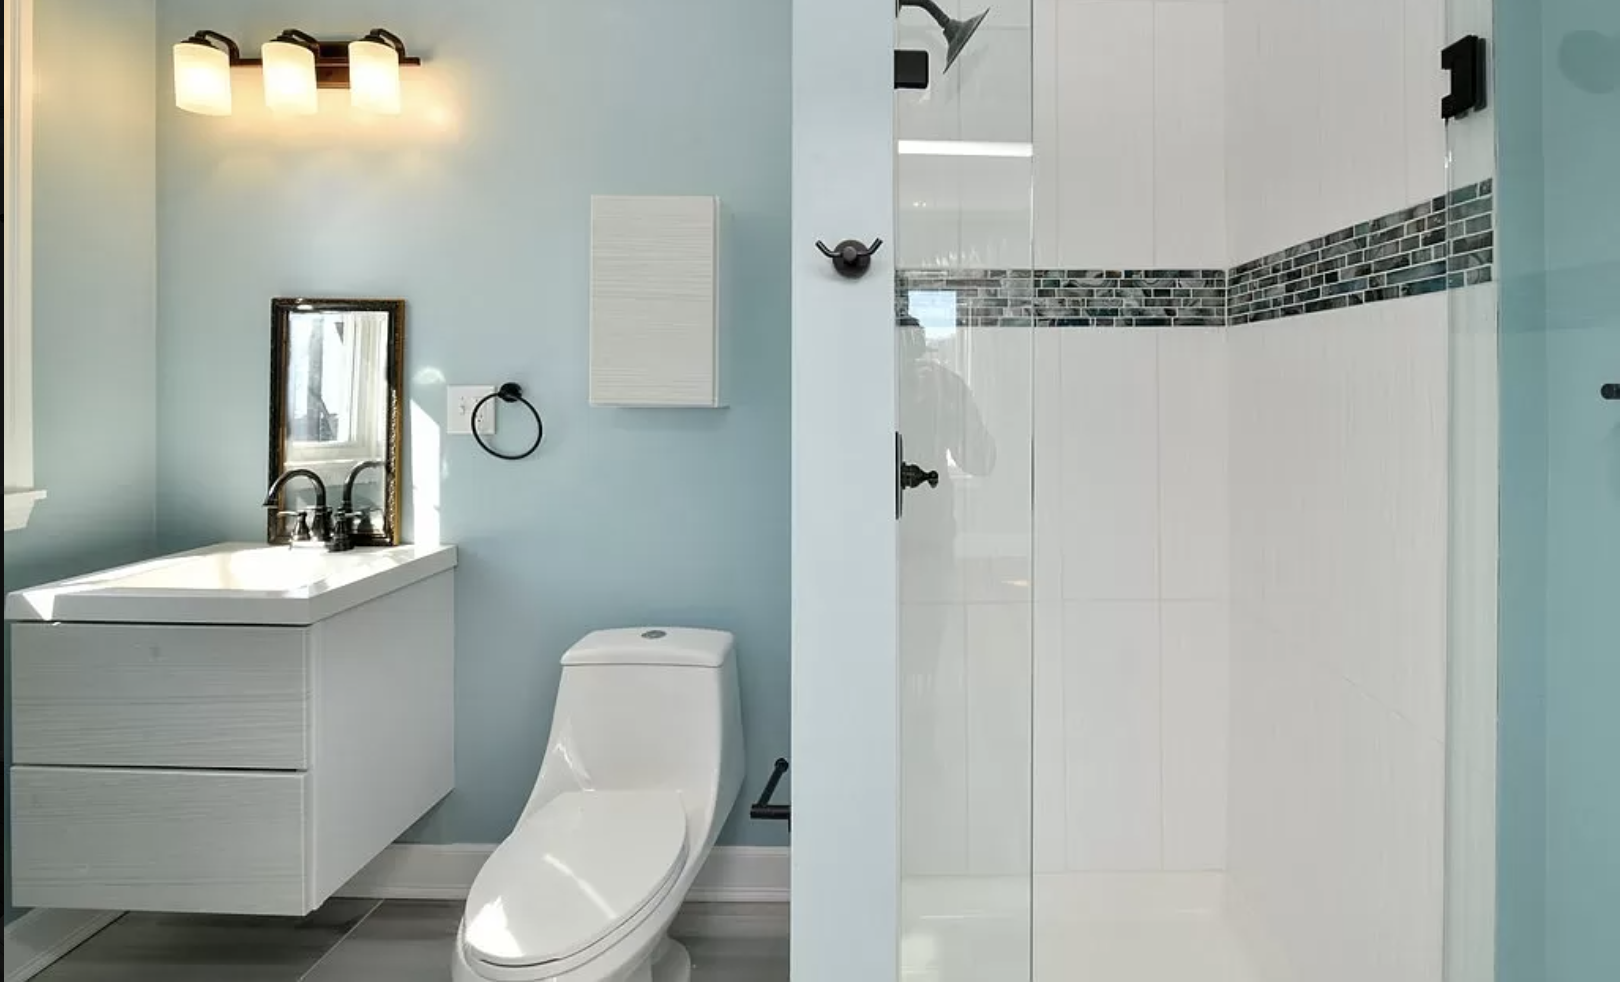 Another, more conventional bathroom in the Jamaica Plain home.